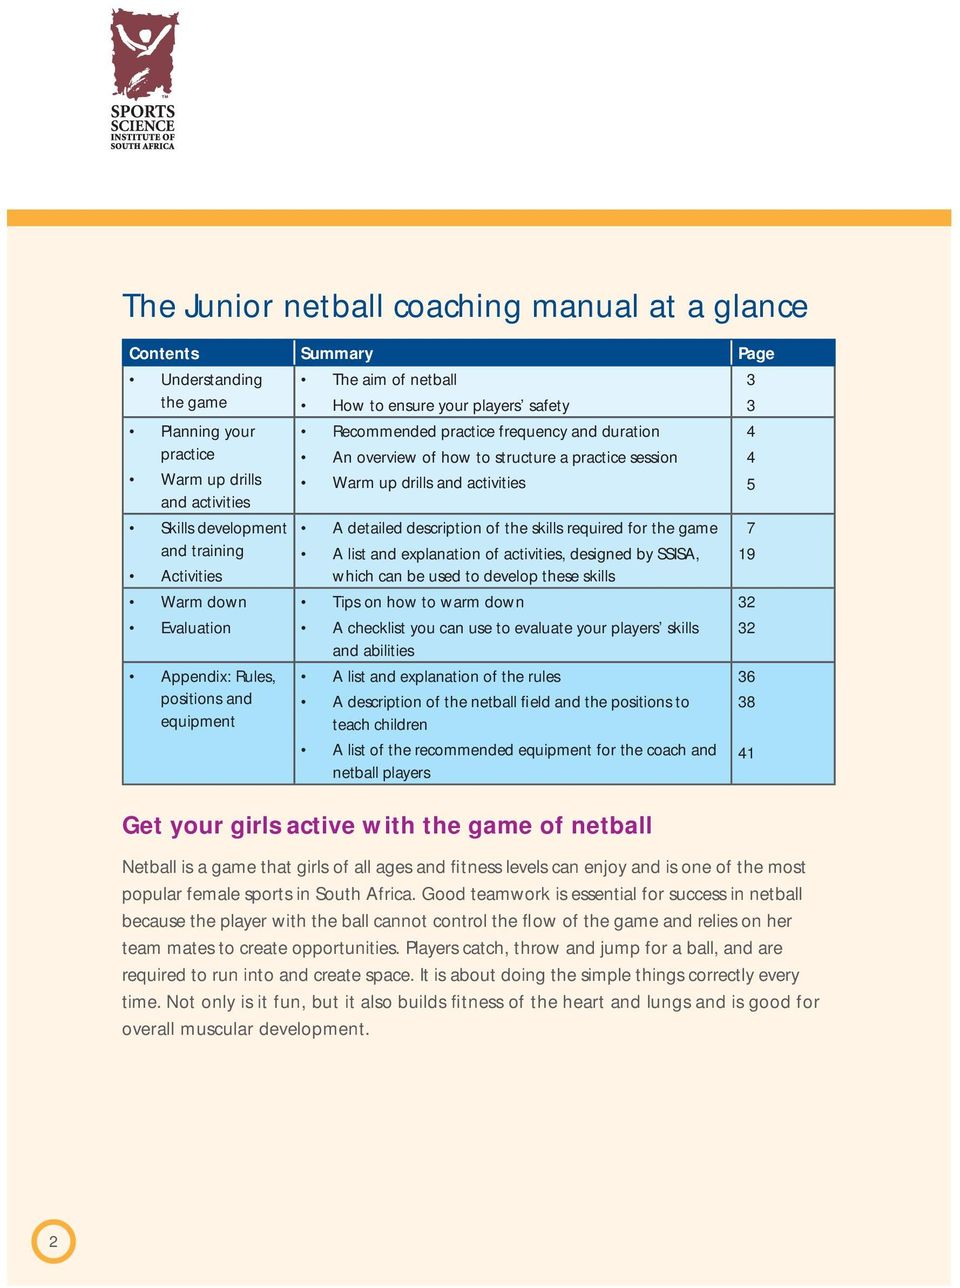 for the game 7 and training A list and explanation of activities, designed by SSISA, 19 Activities which can be used to develop these skills Warm down Tips on how to warm down 32 Evaluation A